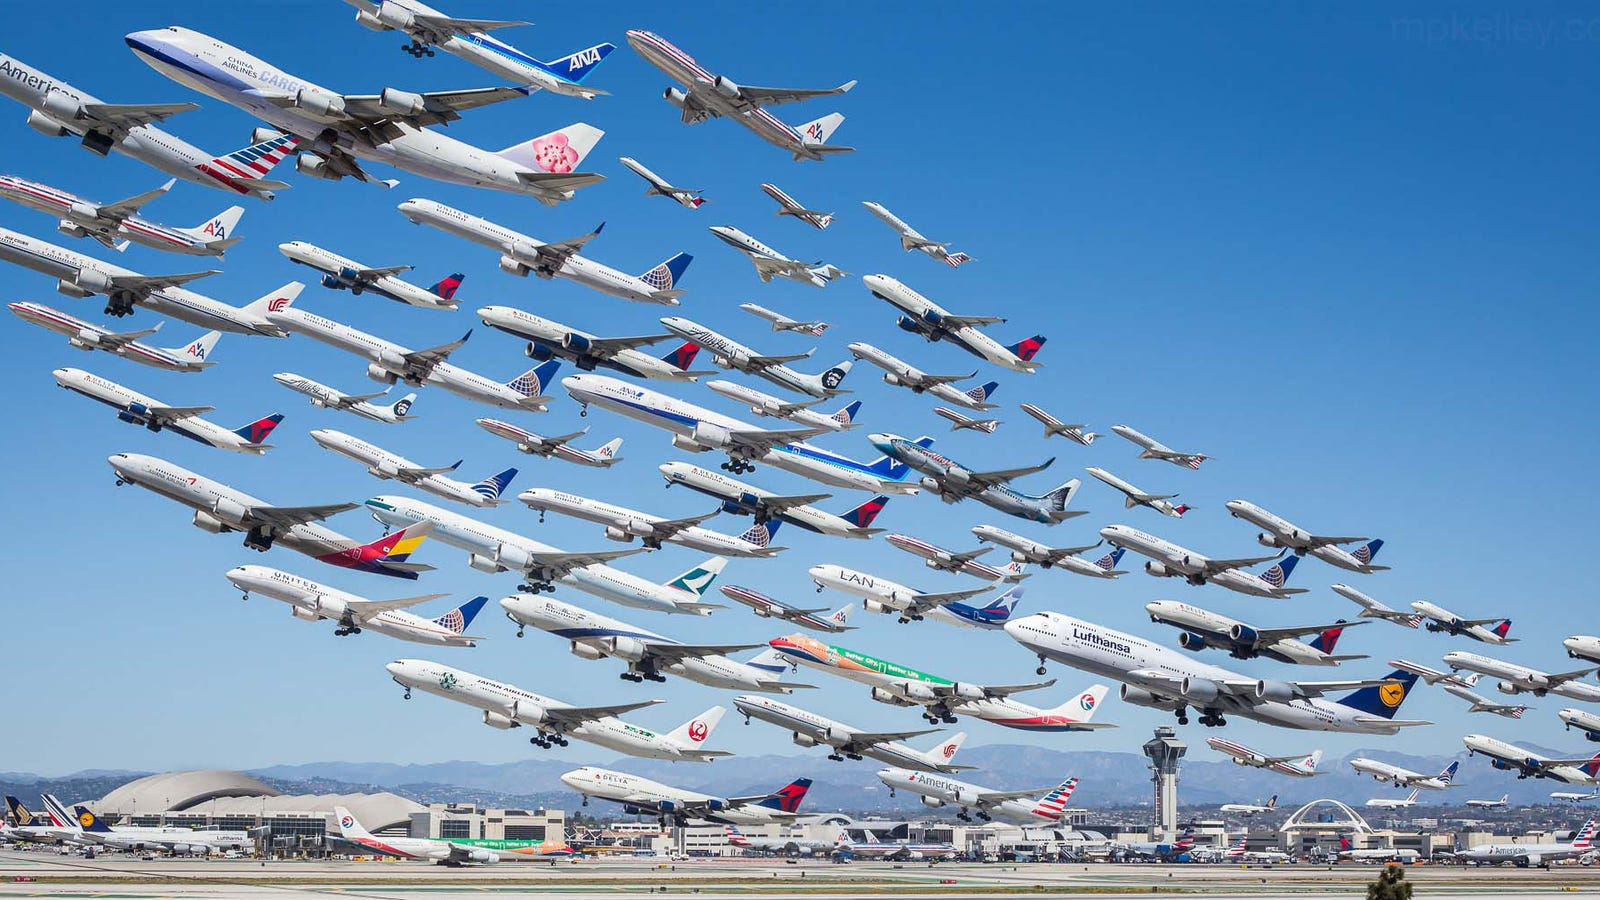 8 hours of airliners departing from Los Angeles in one single photo